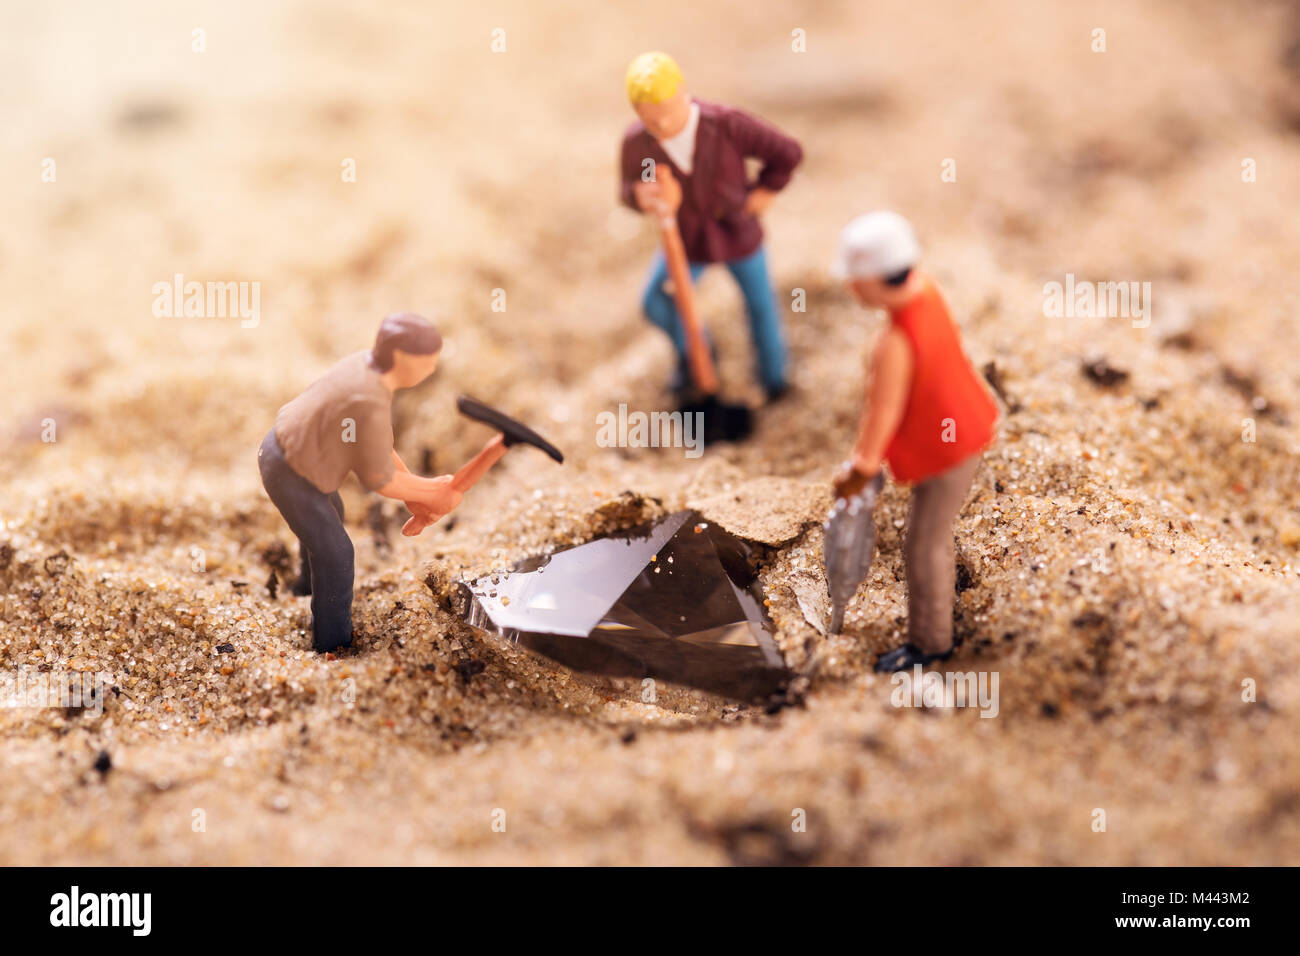 diamond mining and treasure search concept - Stock Image